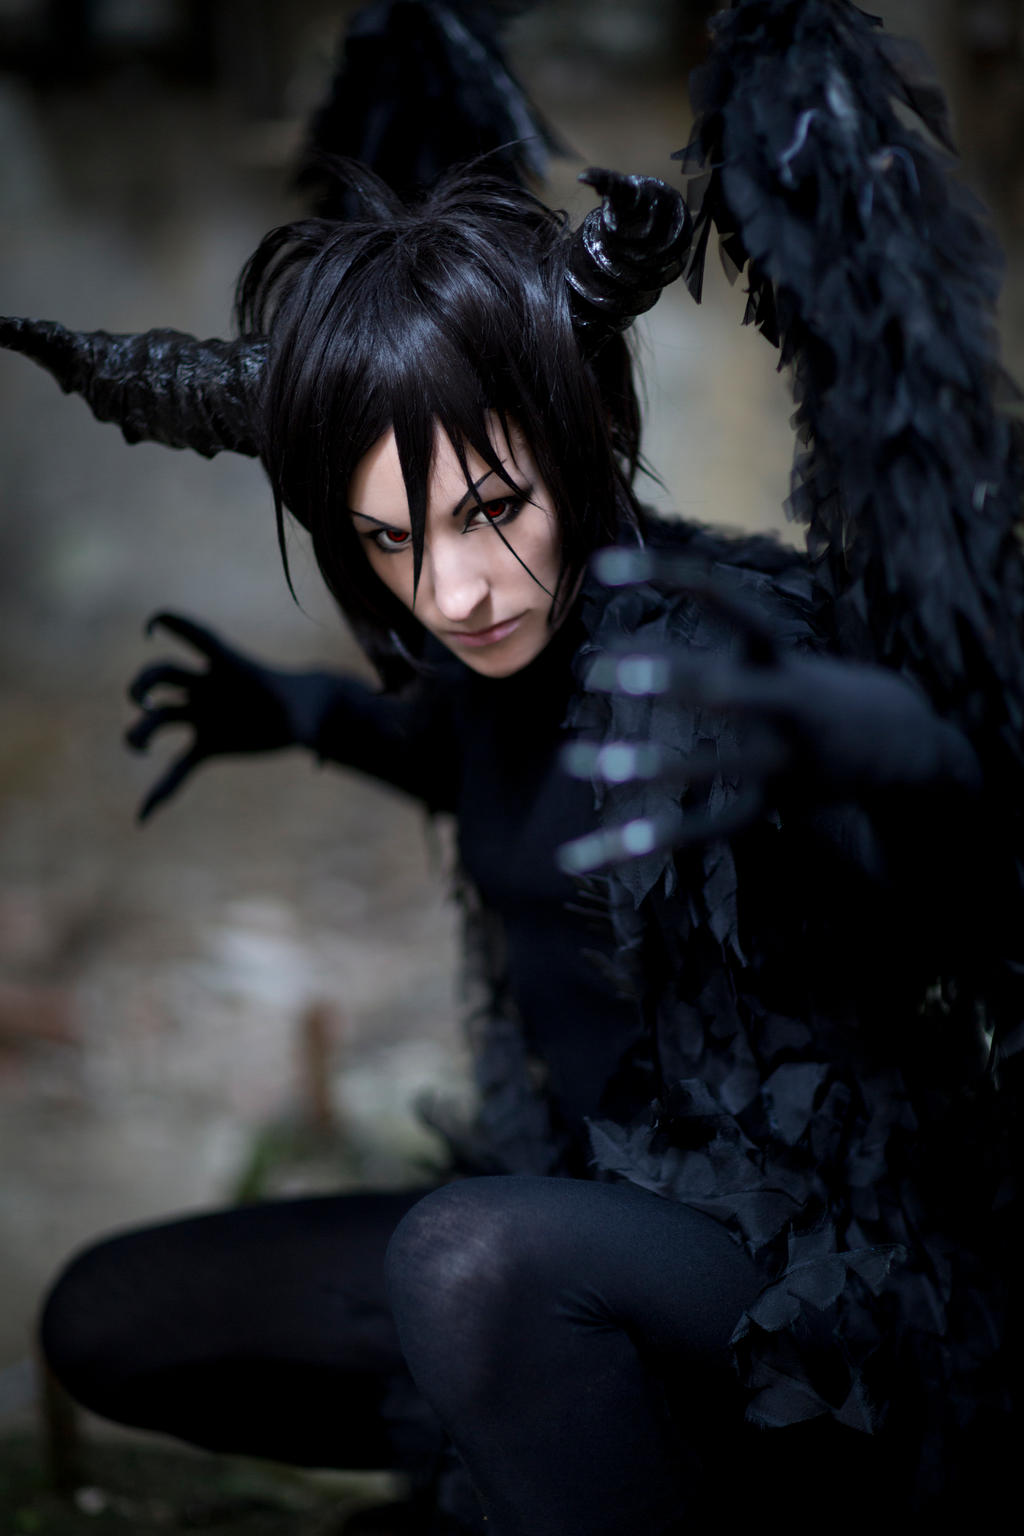 Sebastian Michaelis - Give me youre soul by RomaiLee on DeviantArt